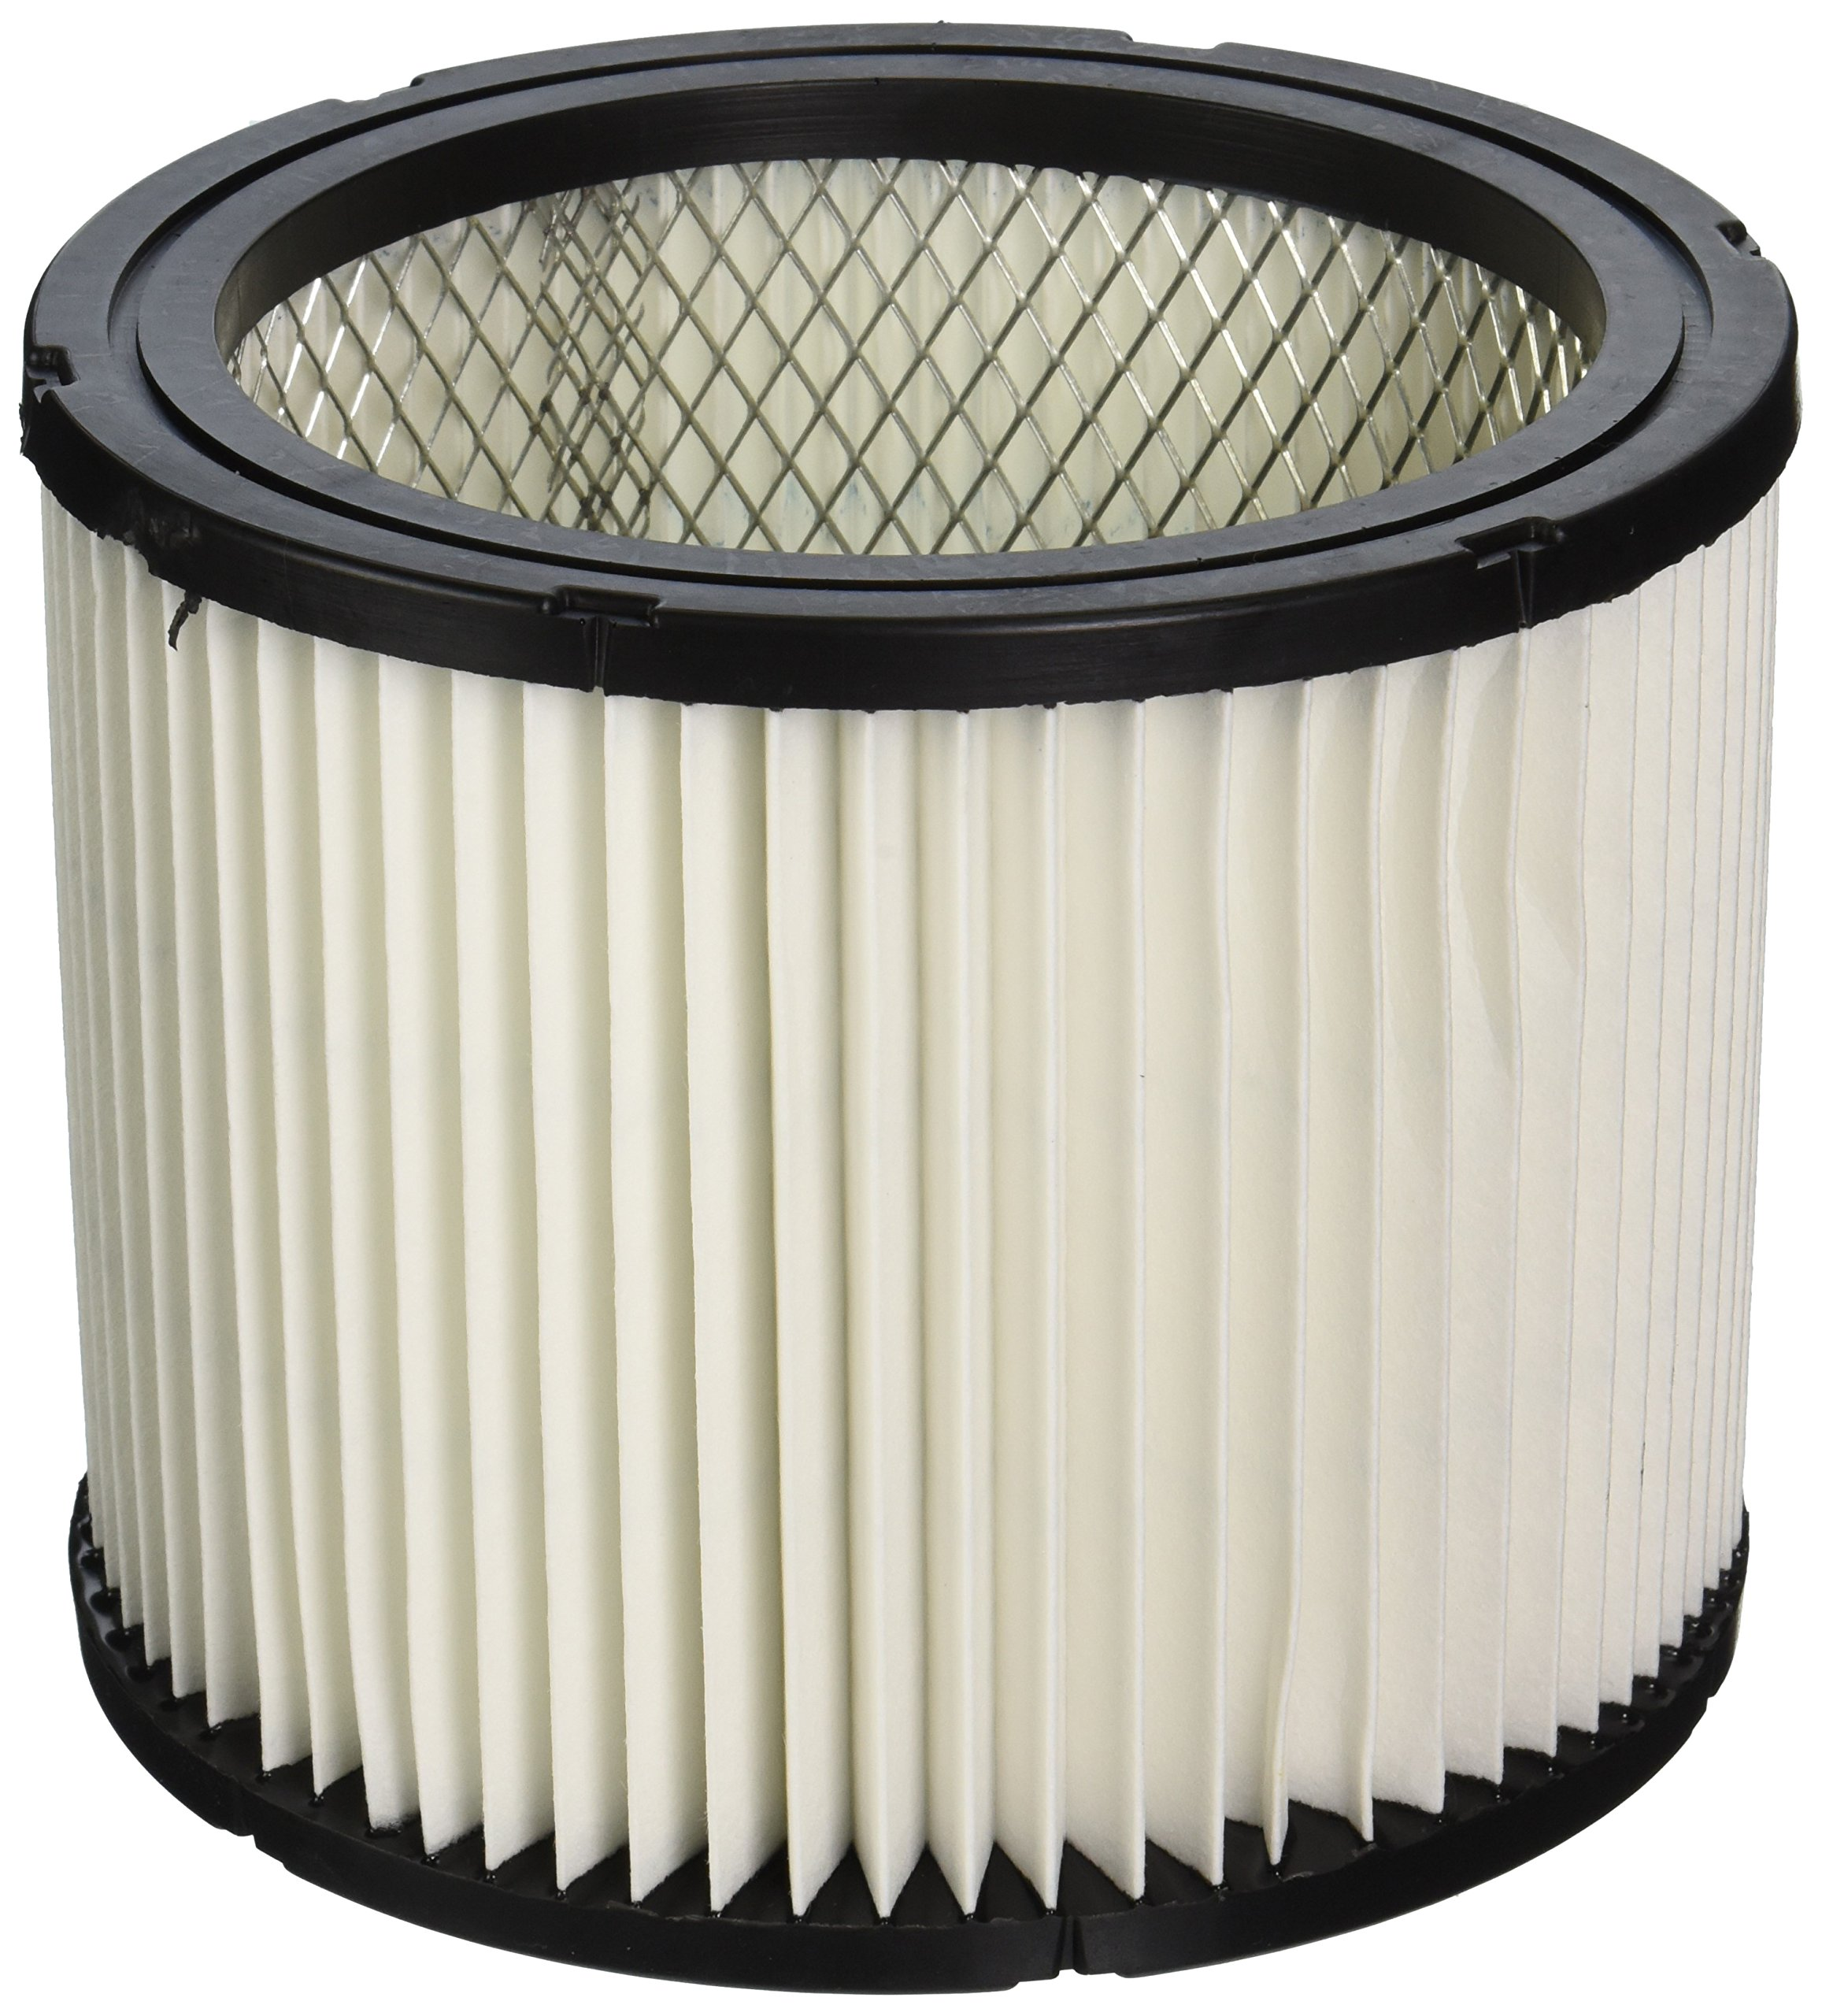 Hoover 43611009 Filter, Round Pleated Wet/Dry S6631/S6635/S6641